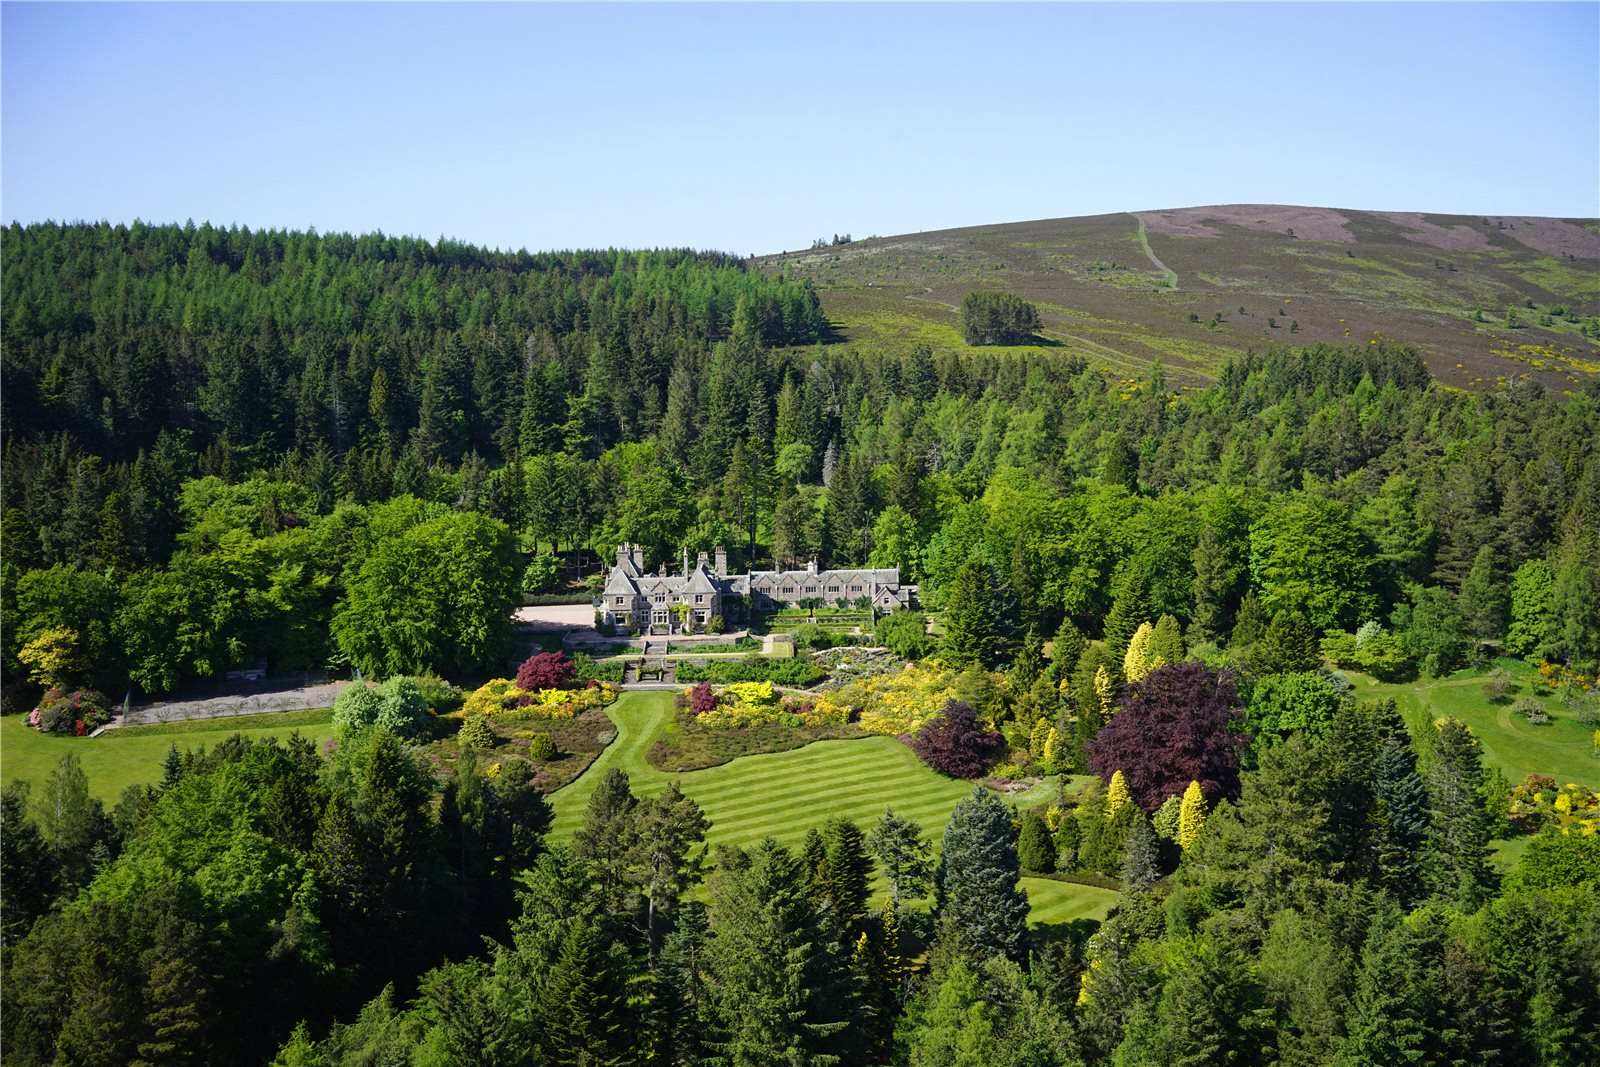 Apartments / Residences for Sale at Tarland, Aboyne, Aberdeenshire, AB34 Aberdeenshire, Scotland